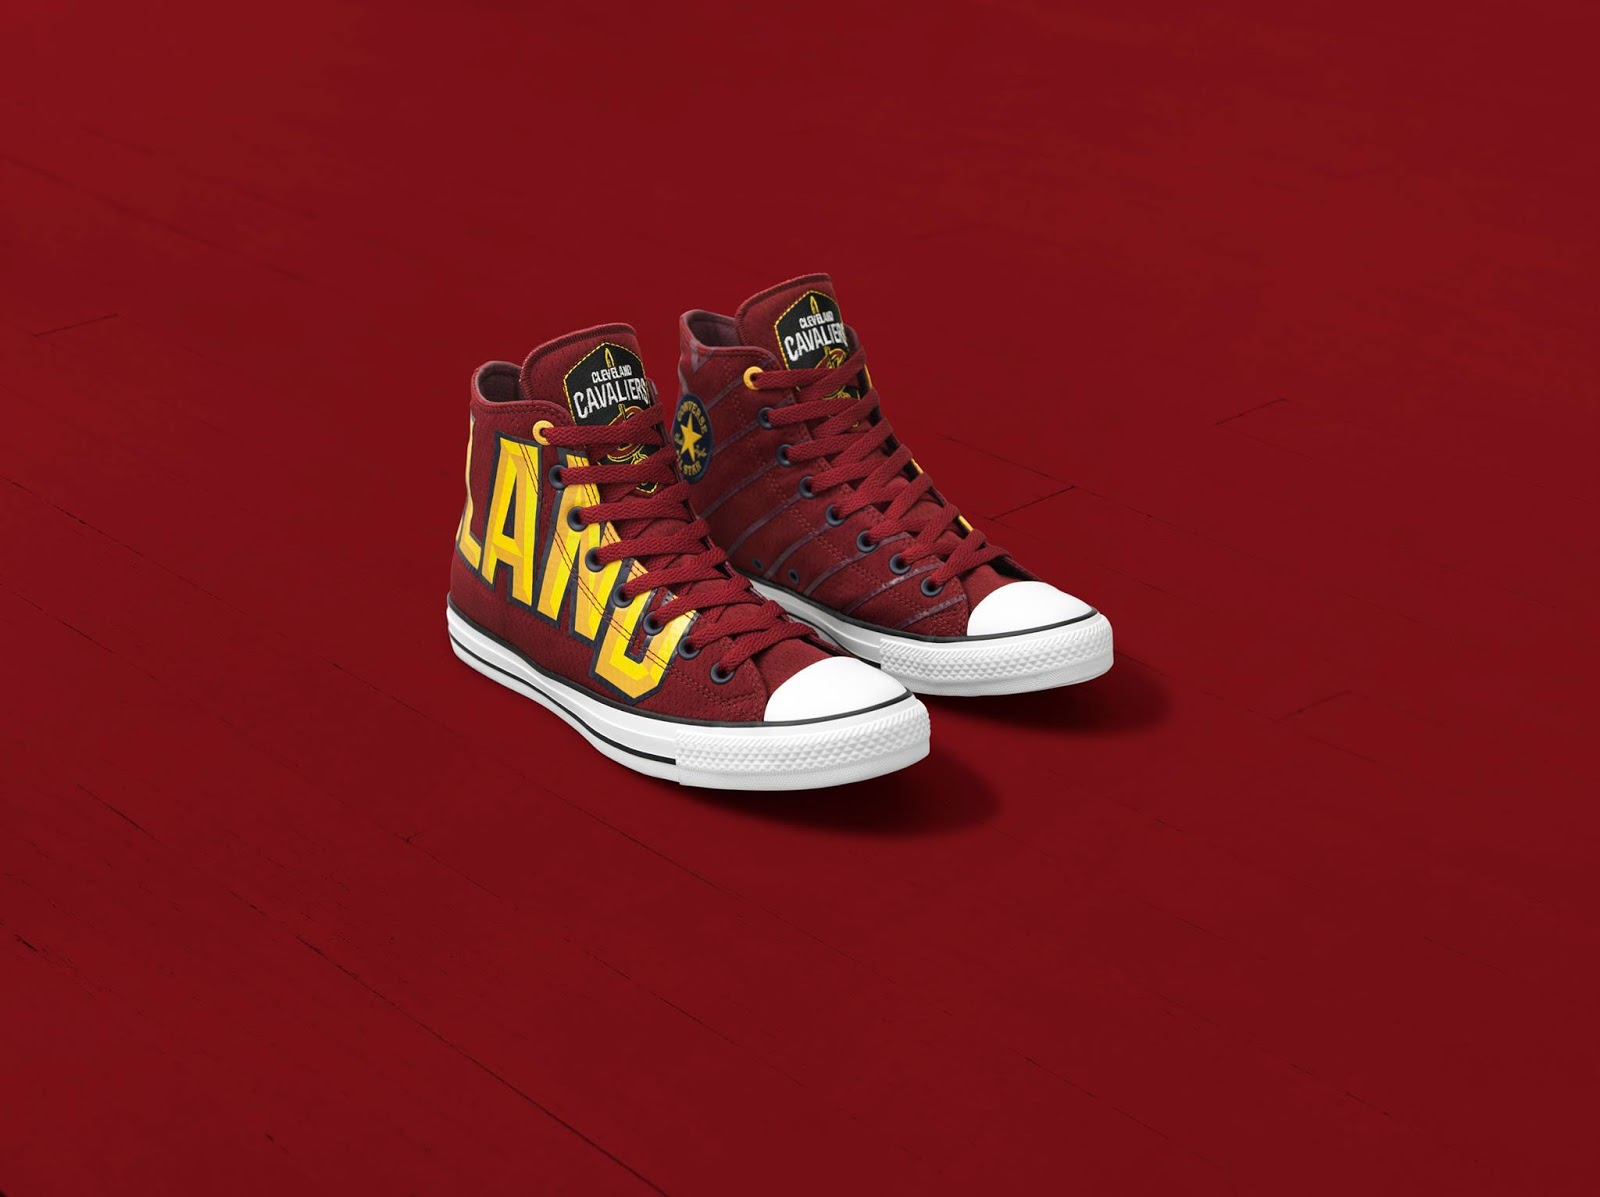 7685e82ca85d The Converse x NBA Chicago Bulls sneakers recall the iconic  90s warm-ups  with its two-tone nylon tongue and red triangles representing the game plan  that ...